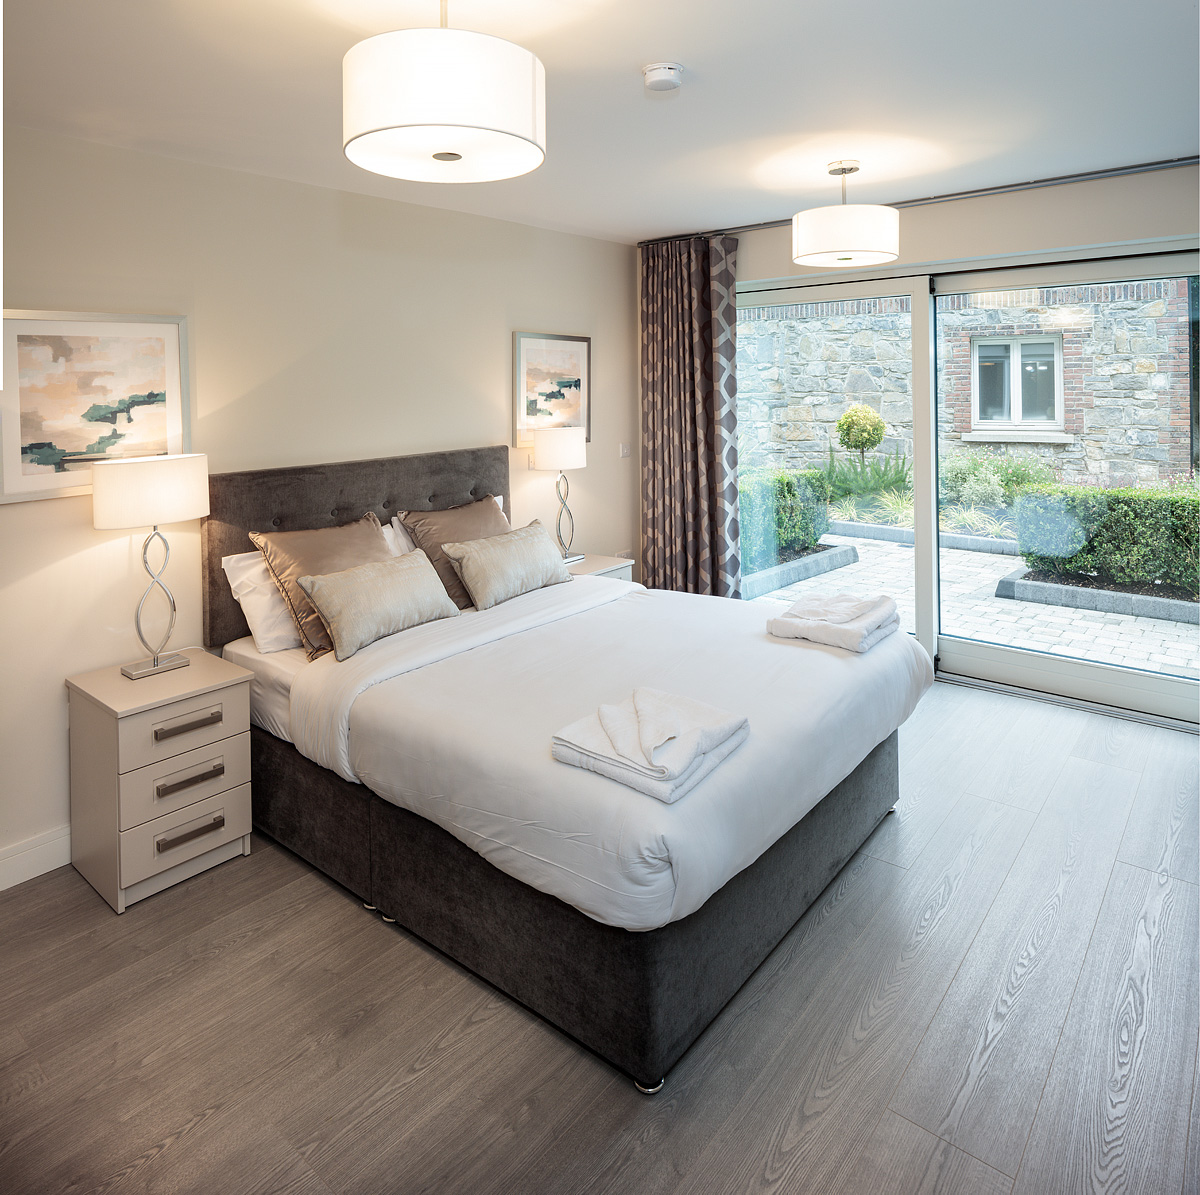 Bedroom at Baggot Rath House Apartments, Ballsbridge, Dublin - Citybase Apartments